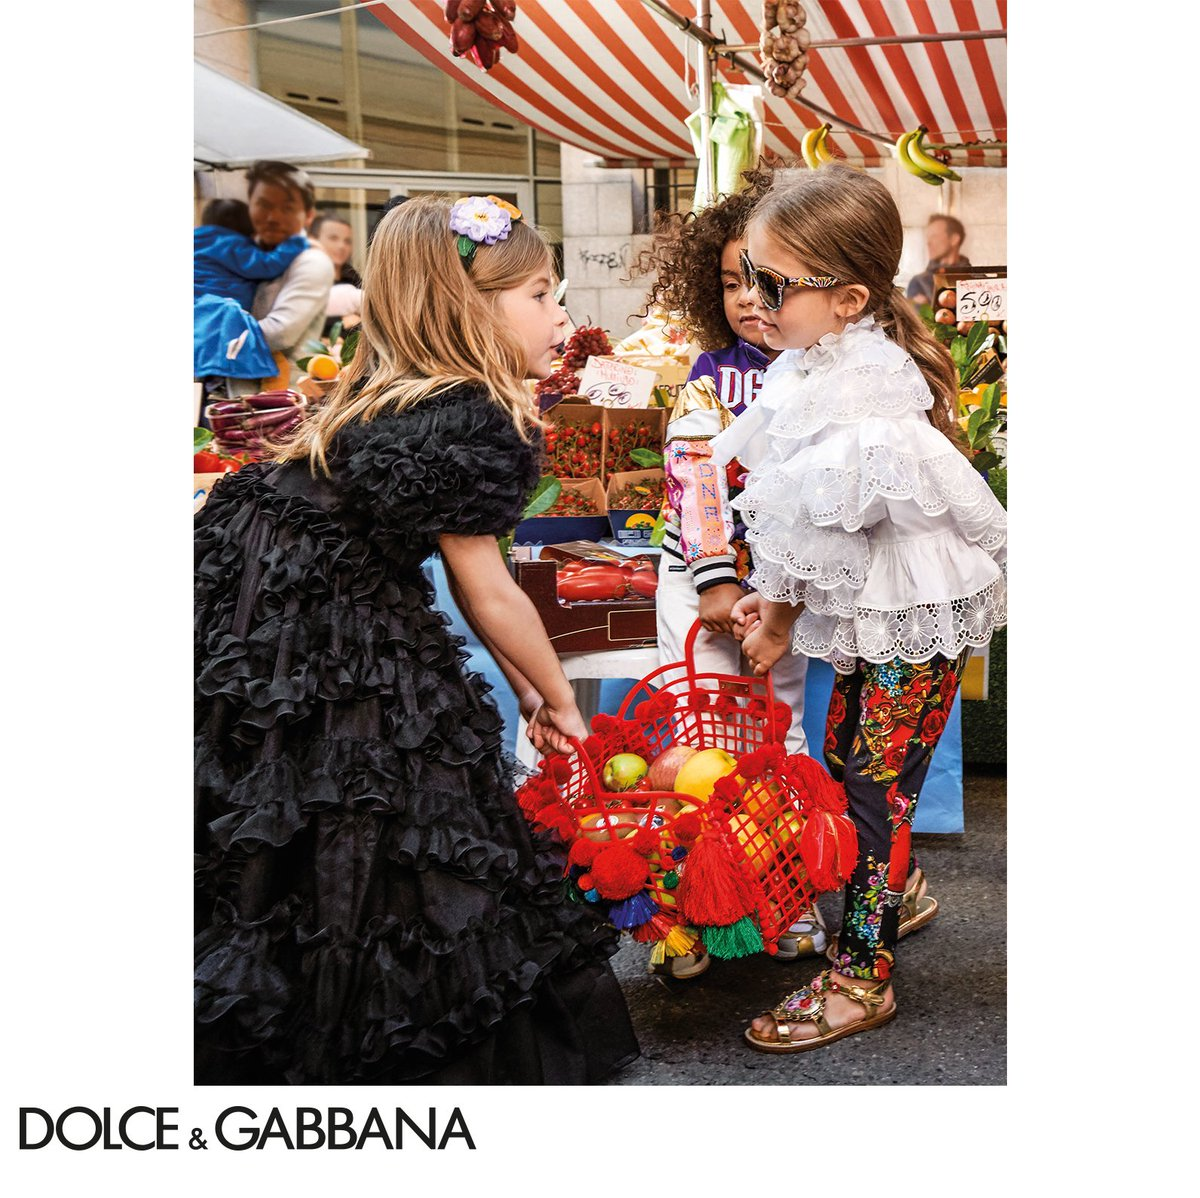 The Dolce&Gabbana Children's Spring Summer 2019 Advertising Campaign.  #DGBambino #DGSS19